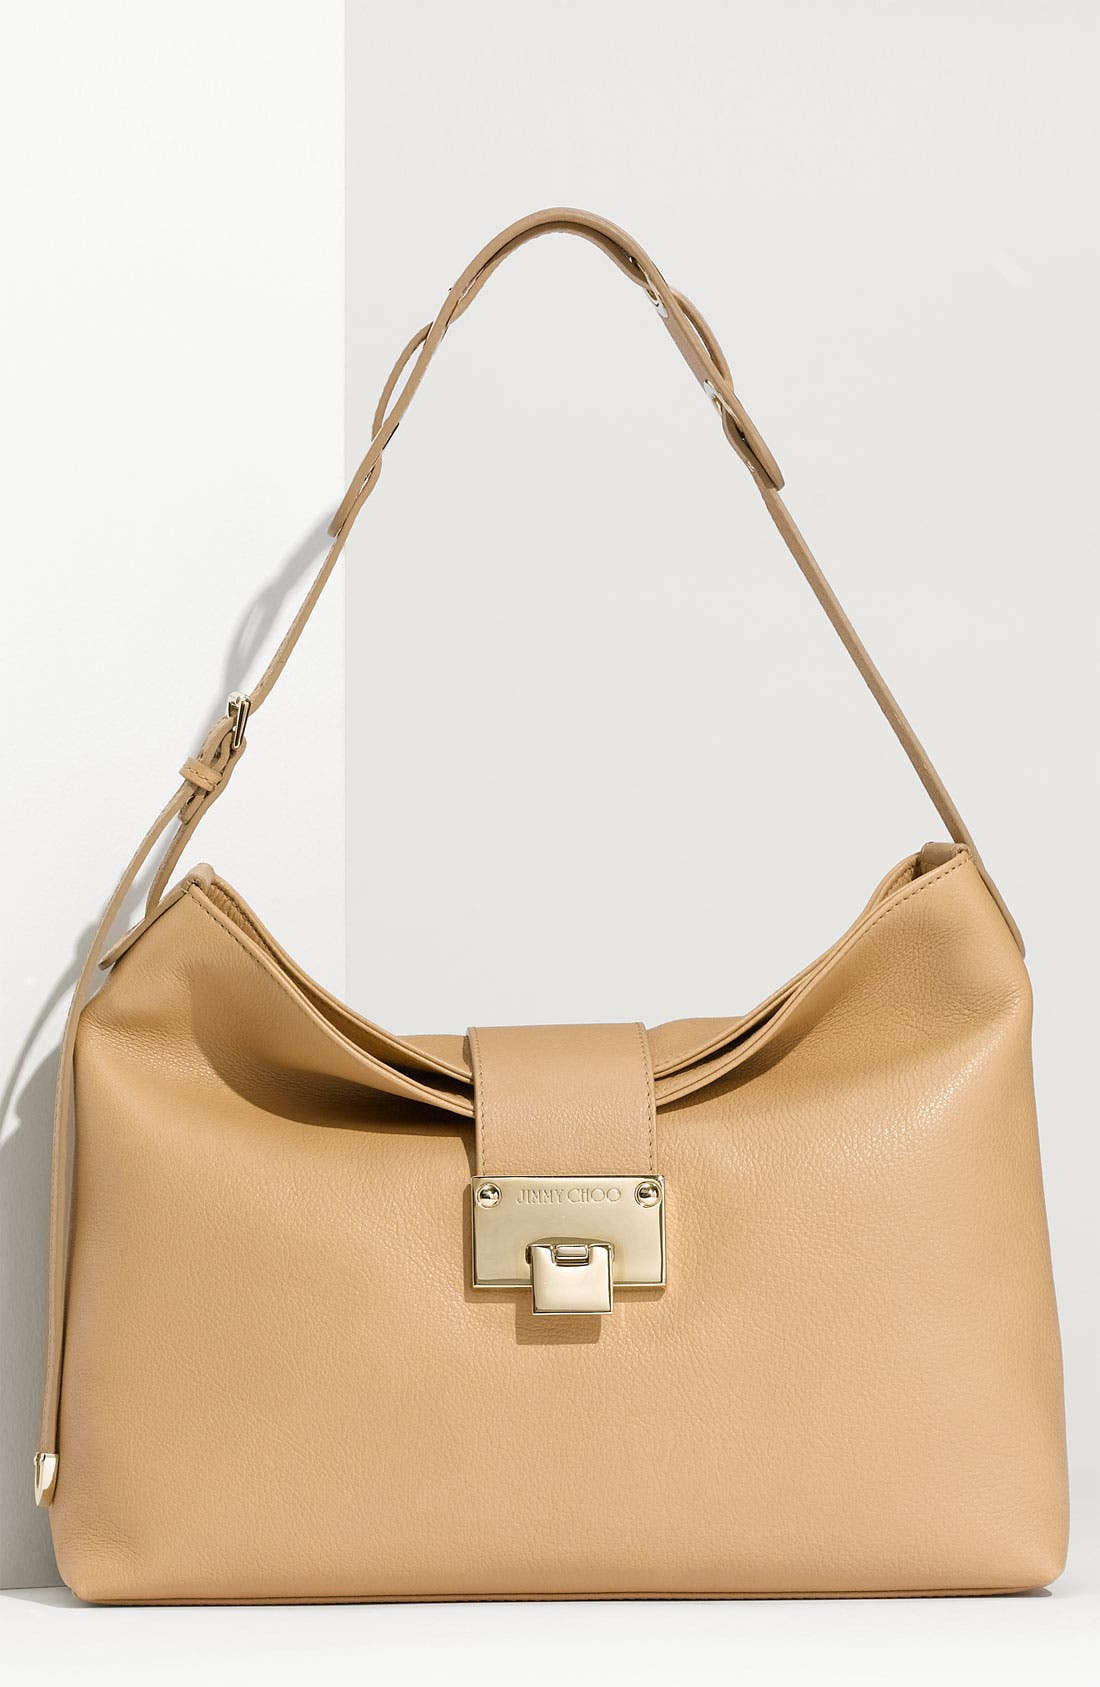 Main Image - Jimmy Choo 'Small Rachel' Grainy Calfskin Leather Shoulder Bag